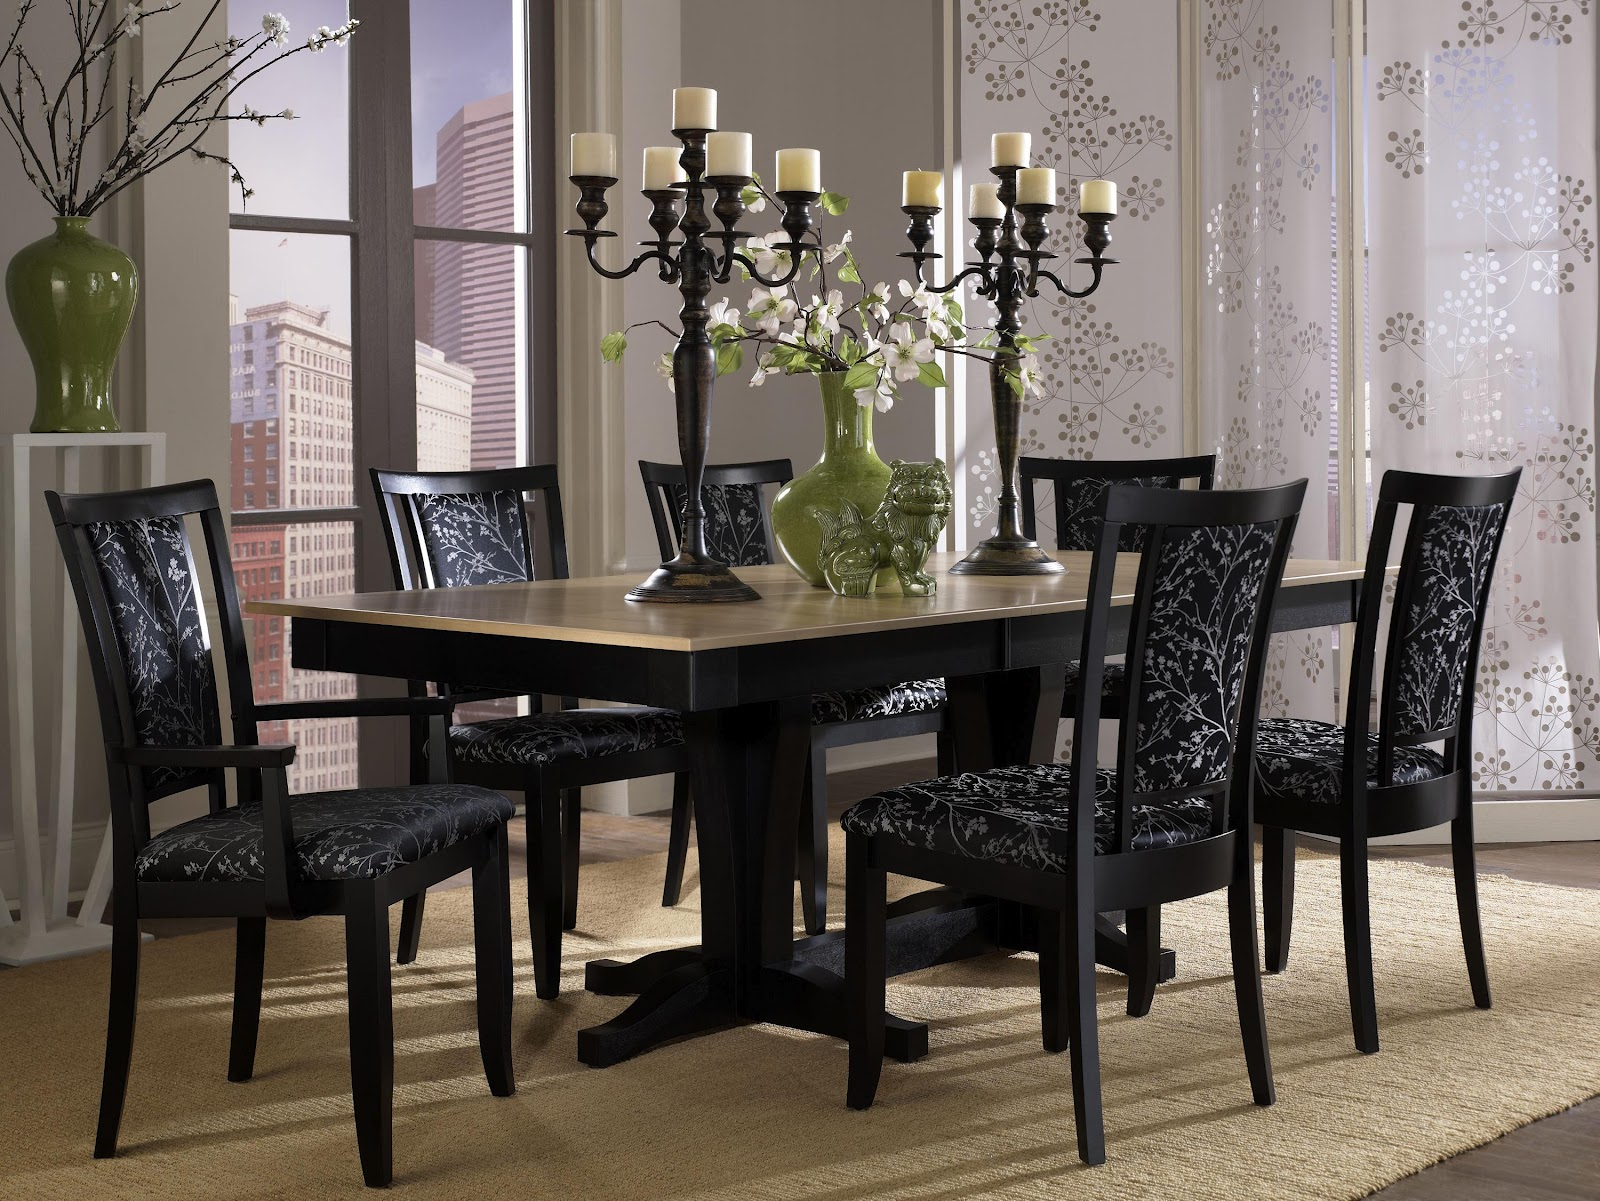 Canadel dining room sets new york dining room unique for Breakfast room sets